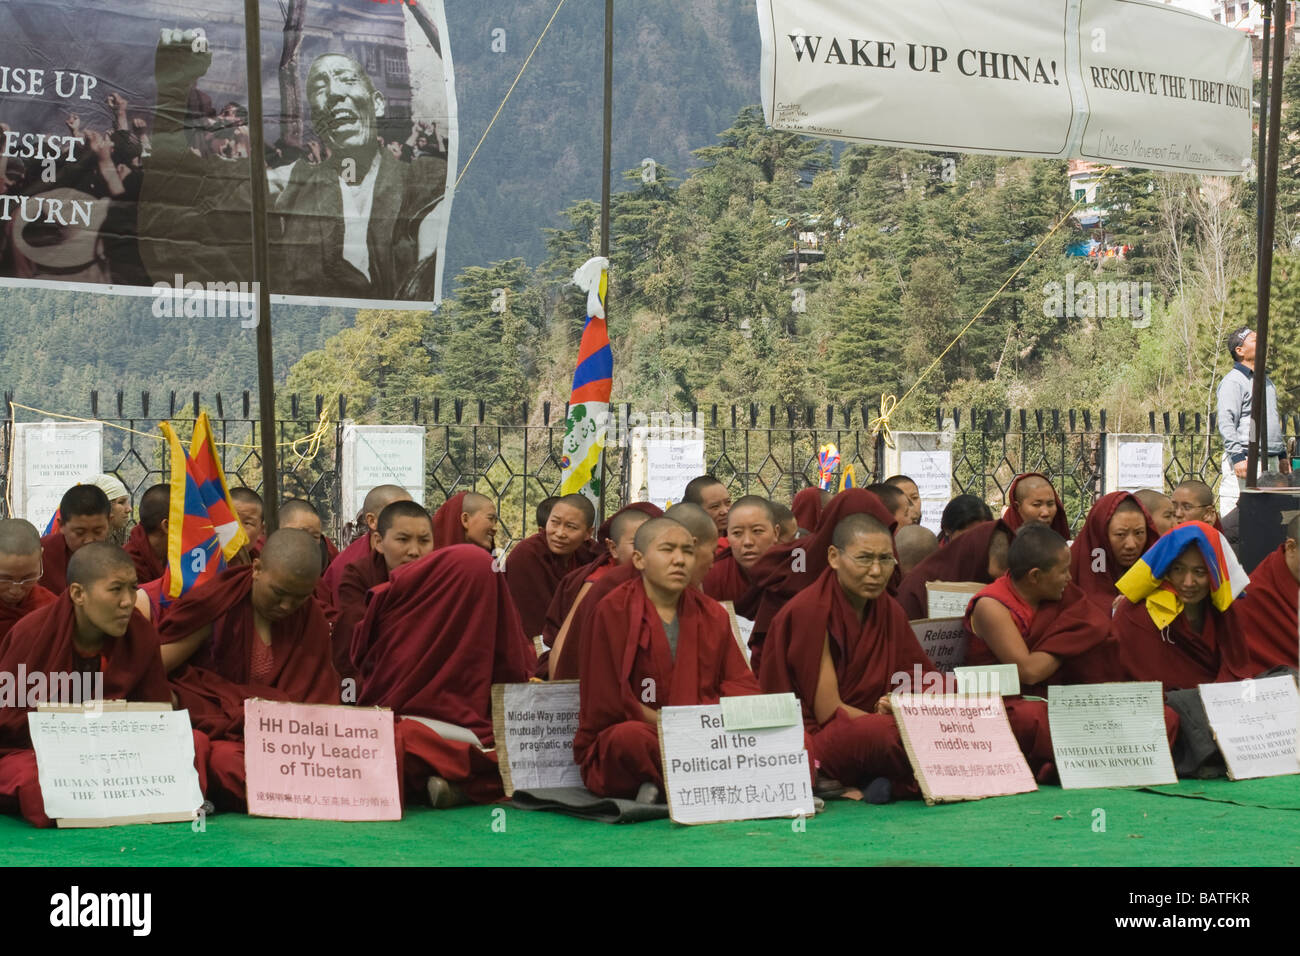 Tibetan Buddhist Nuns protesting peacefully after fifity years of asylum in India at Mceod Ganj, Dharamsala, India - Stock Image